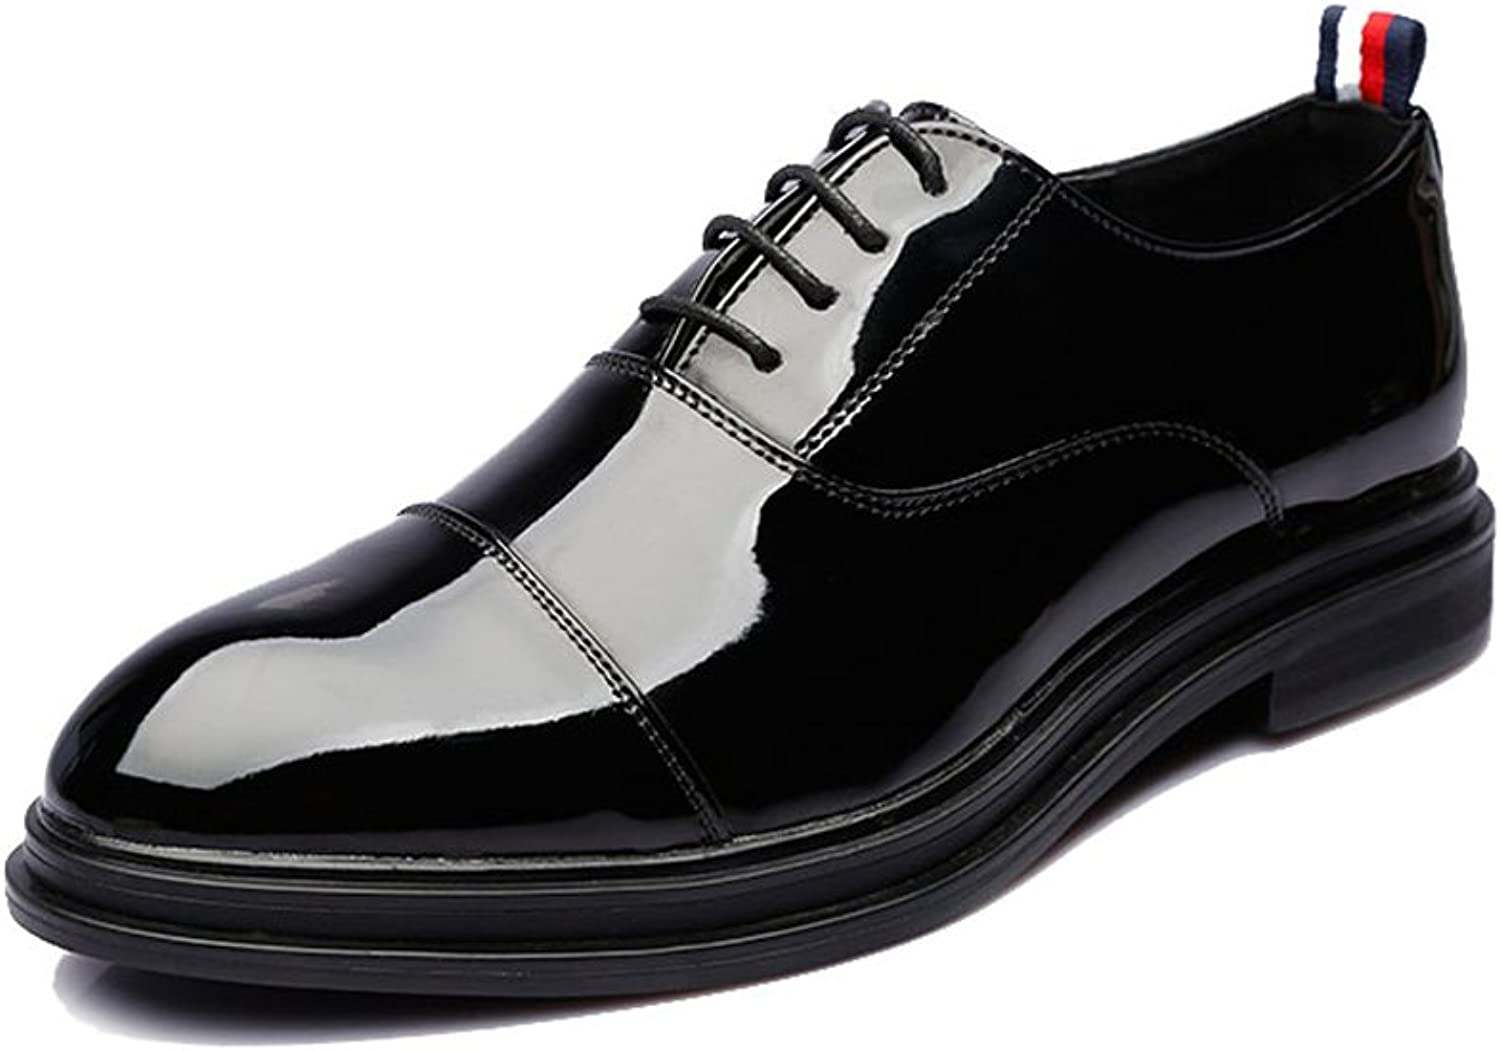 CHENXD shoes, Men's Fashion Classic Breathable Smooth PU Leather shoes Lace Up Formal Business Lined Outsole Oxfords